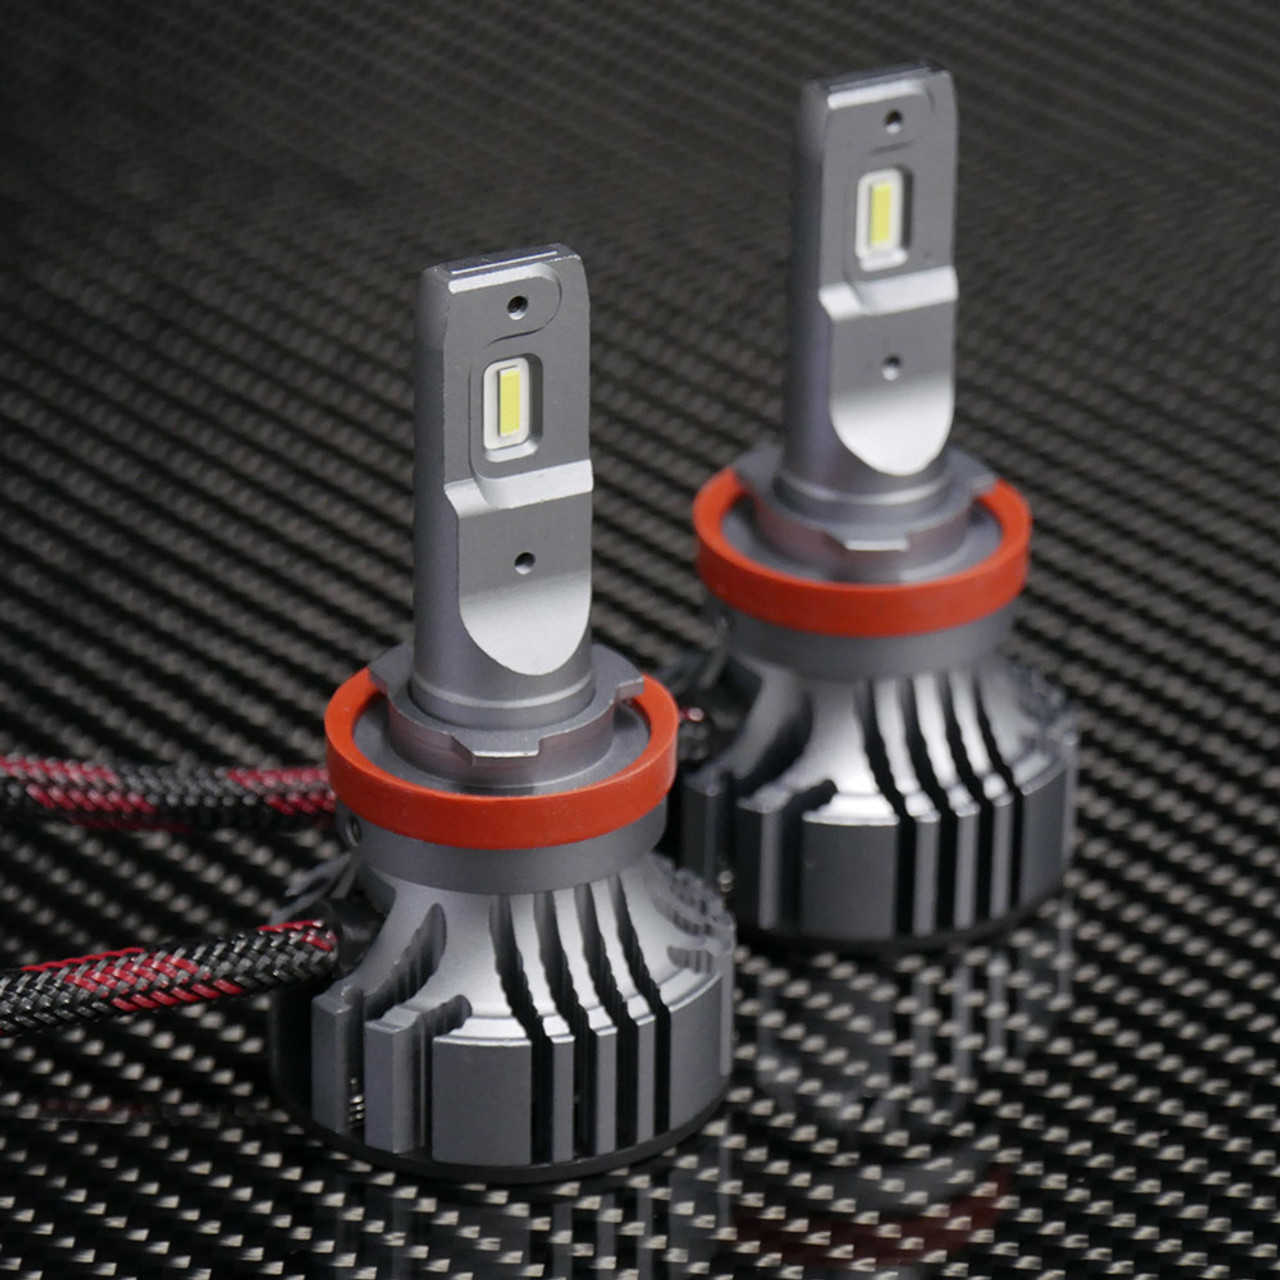 9005 Type High Power Focus Adjustable LED Headlight Bulb Replaces Halogen /& HID